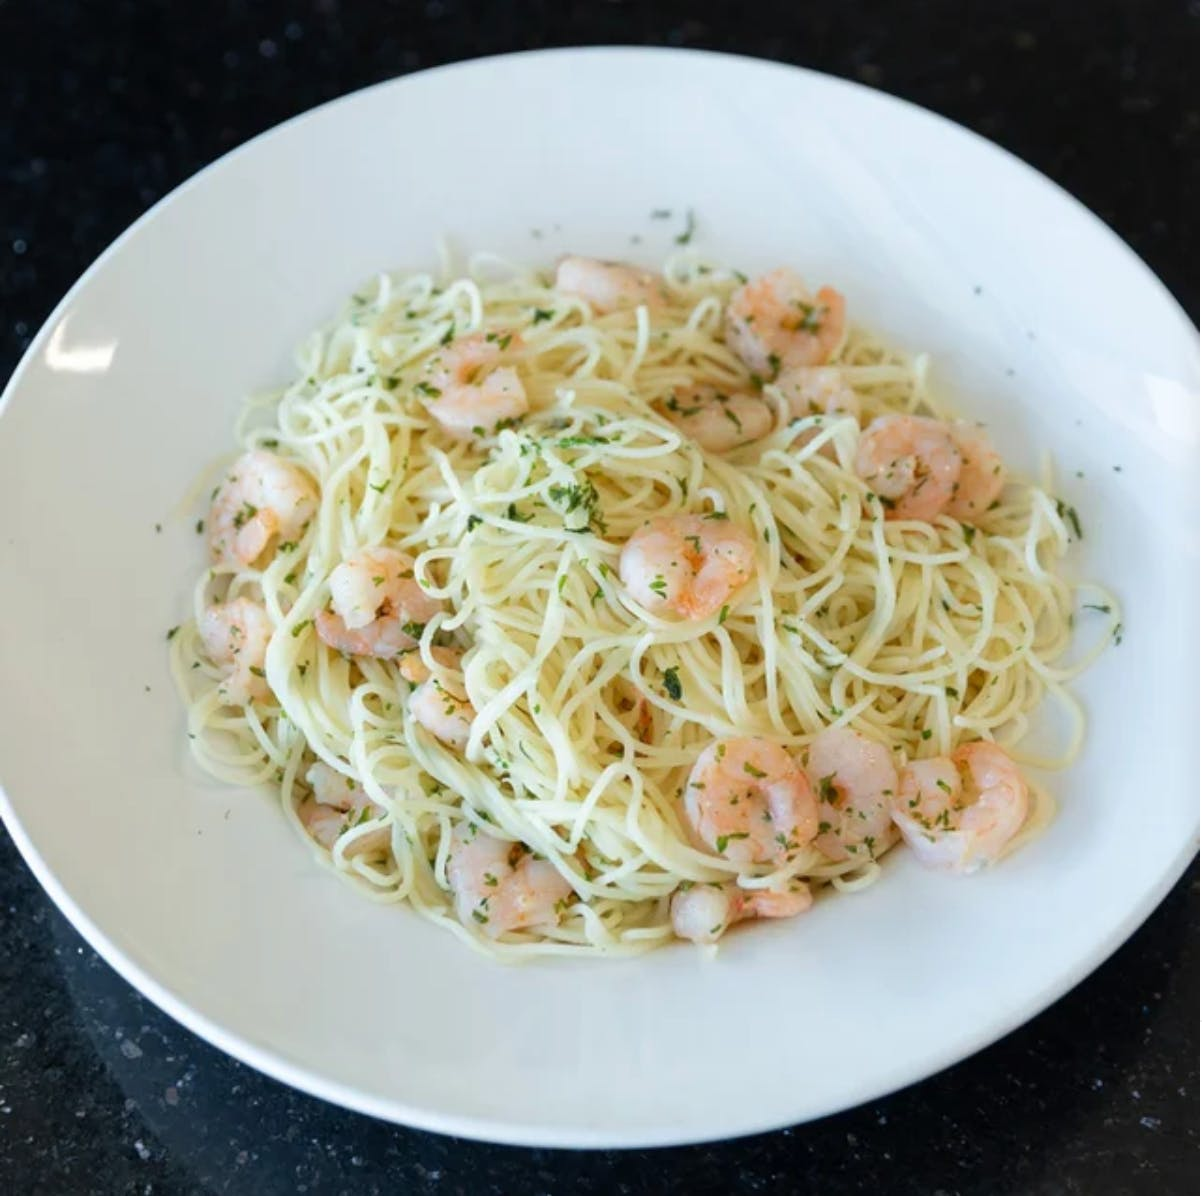 Shrimp Scampi Pasta from Aroma Pizza & Pasta in Lake Forest, CA